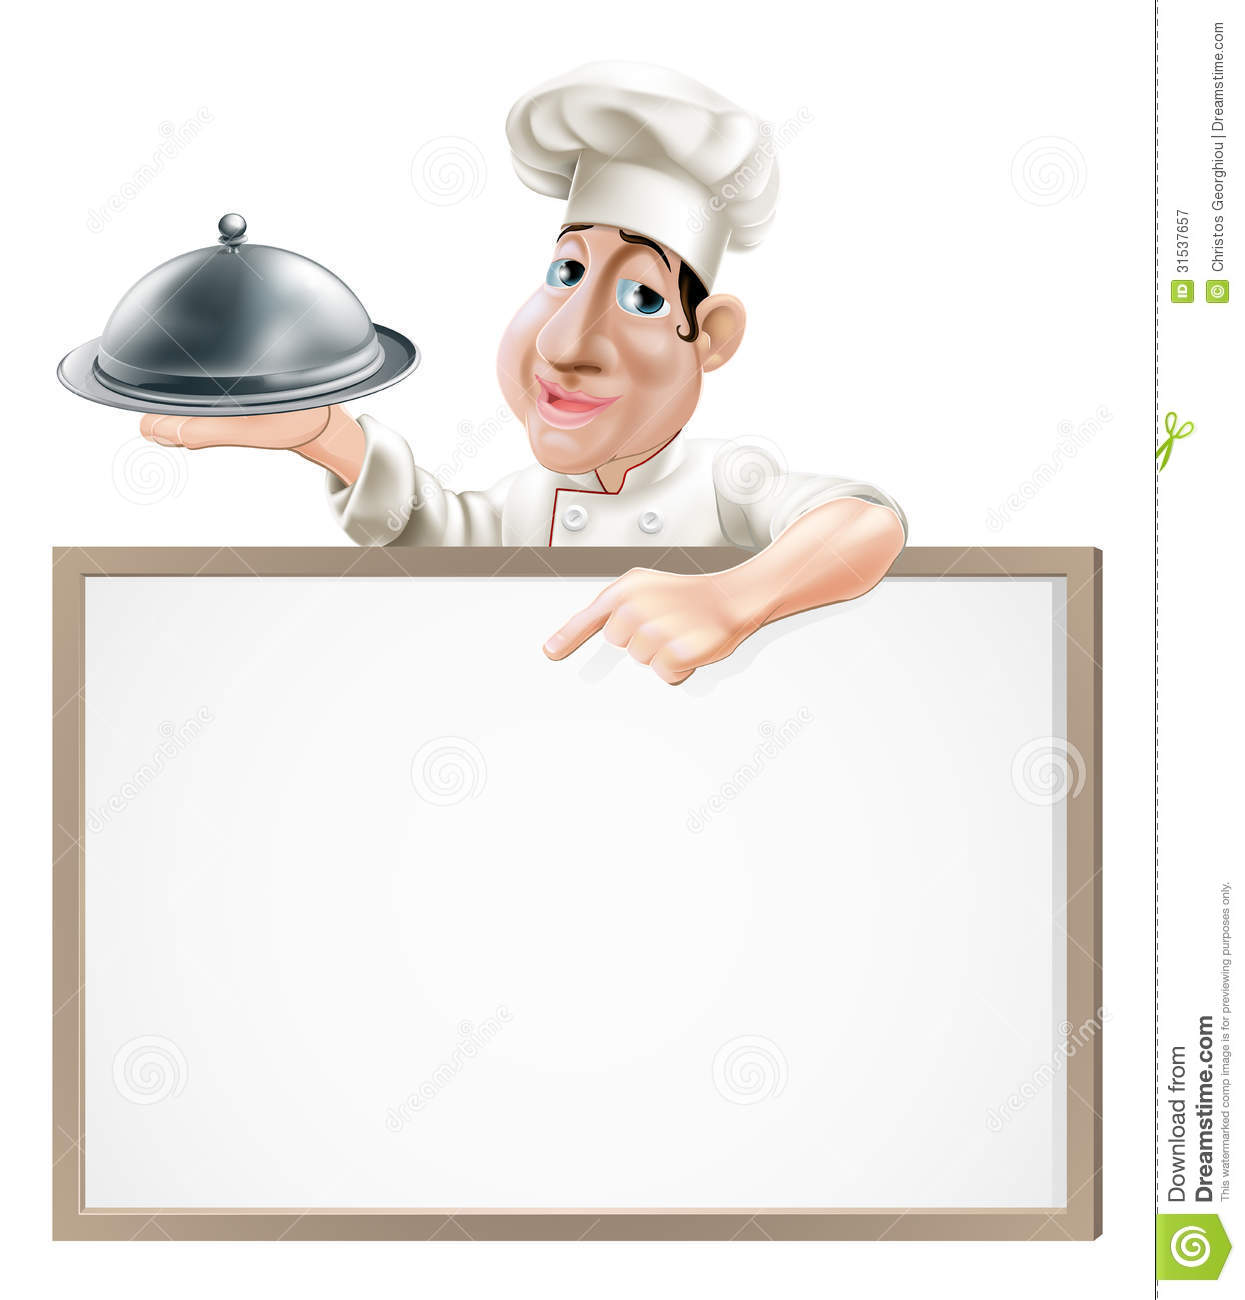 Chef Cloche And Menu Royalty Free Stock Photography - Image: 31537657